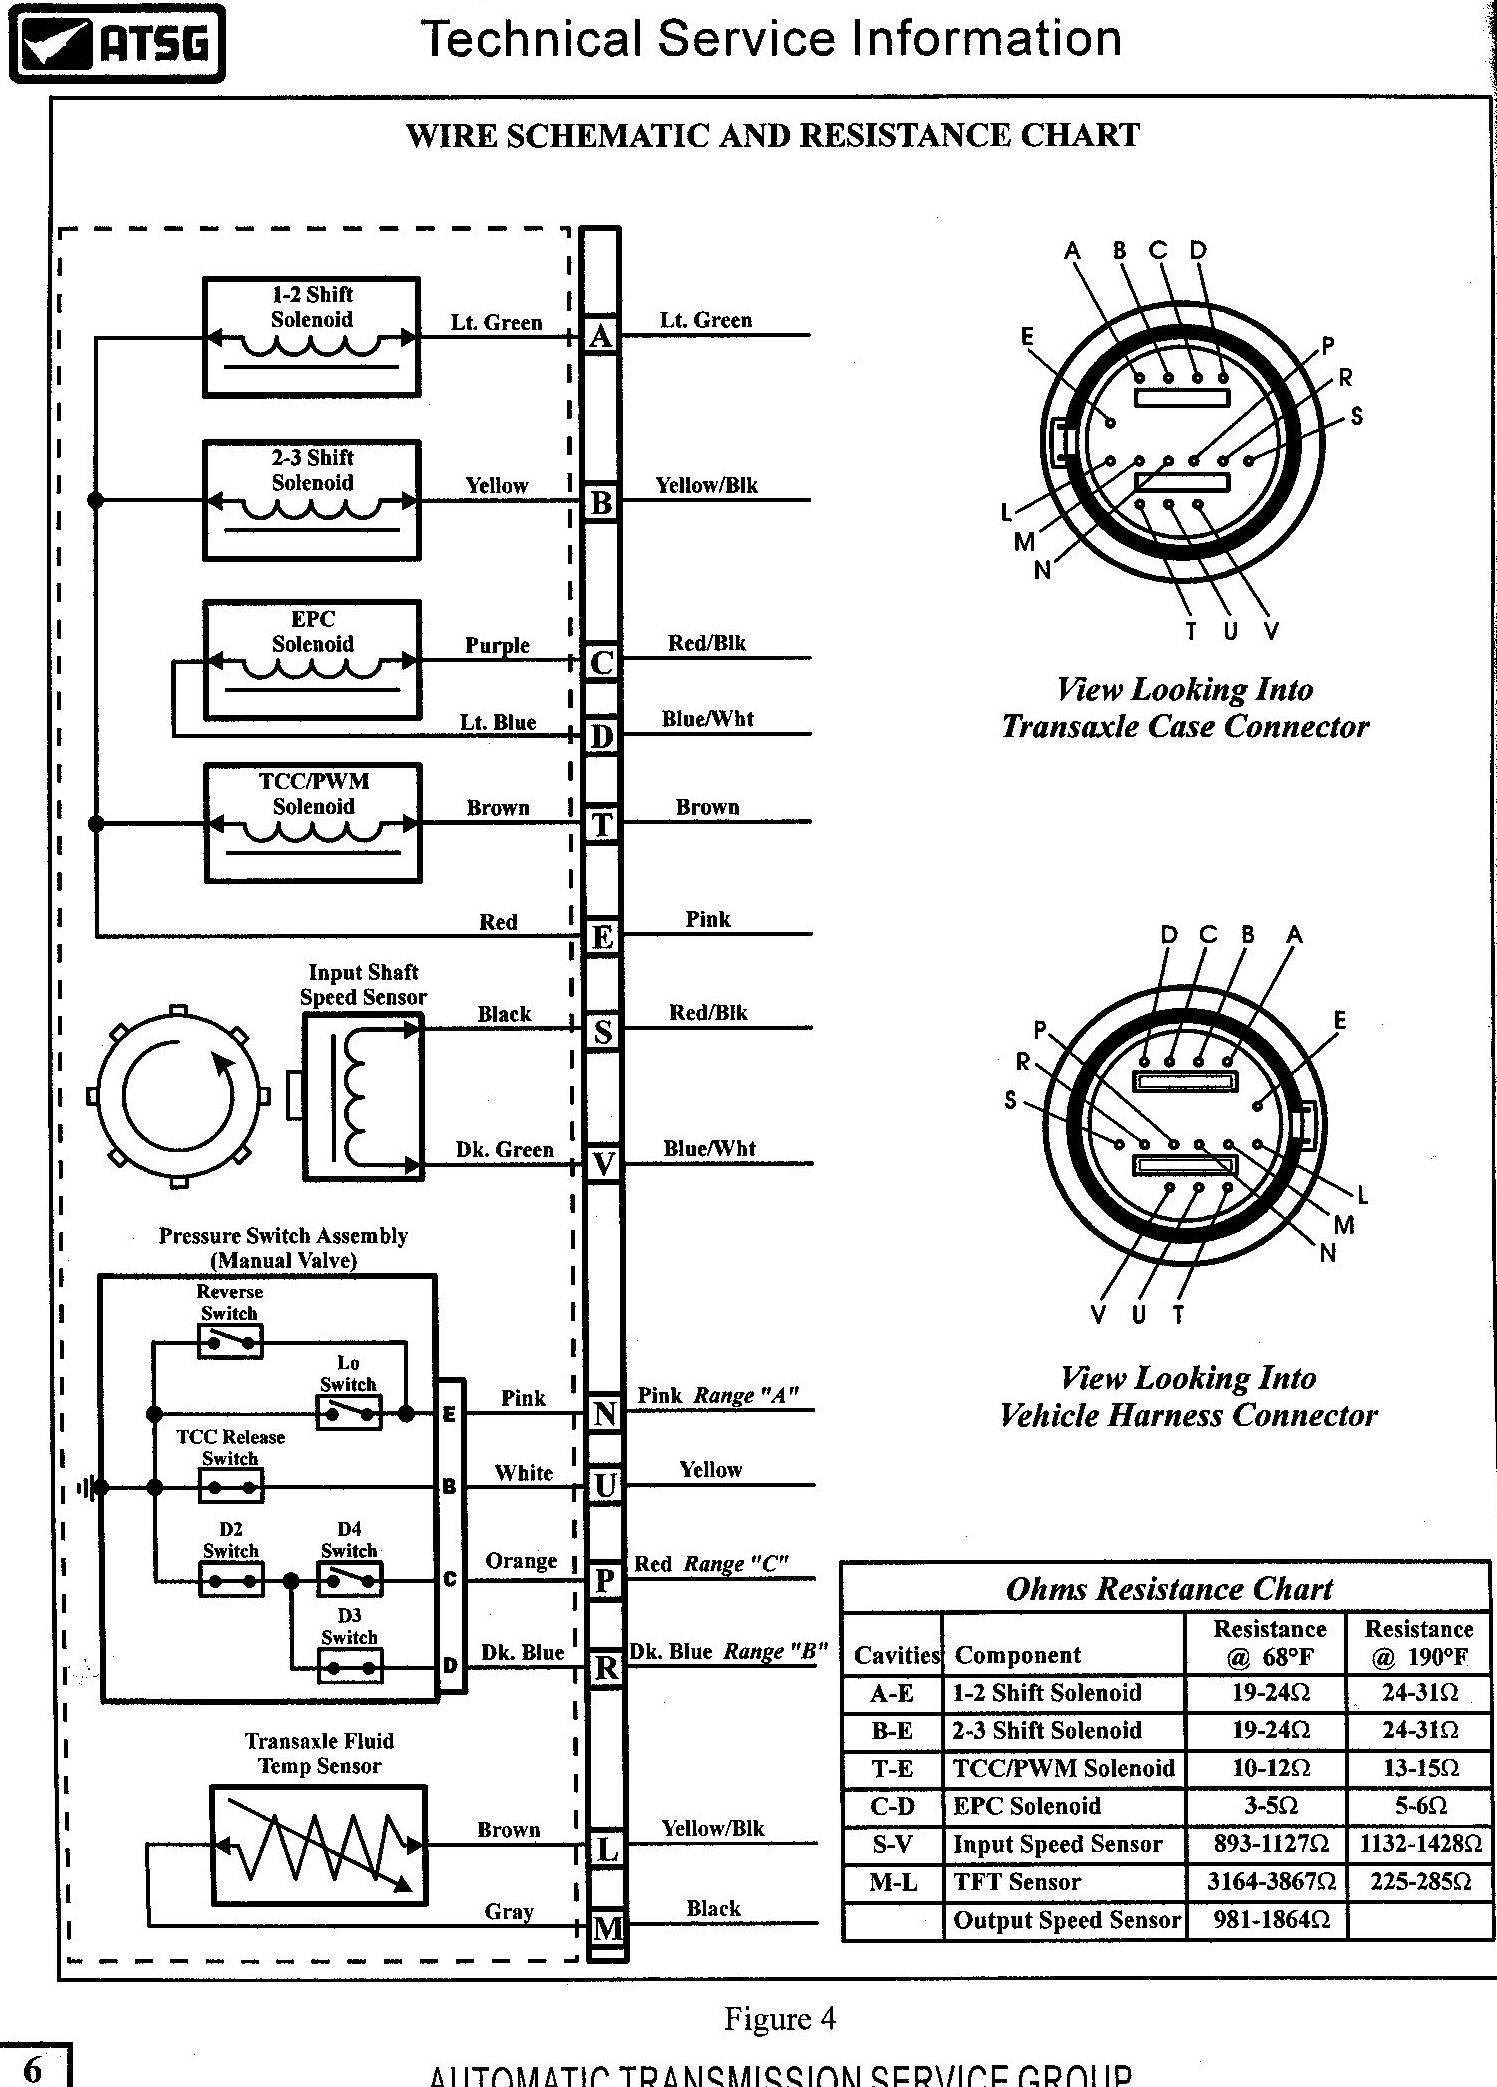 05 chevy malibu transmission wiring diagram